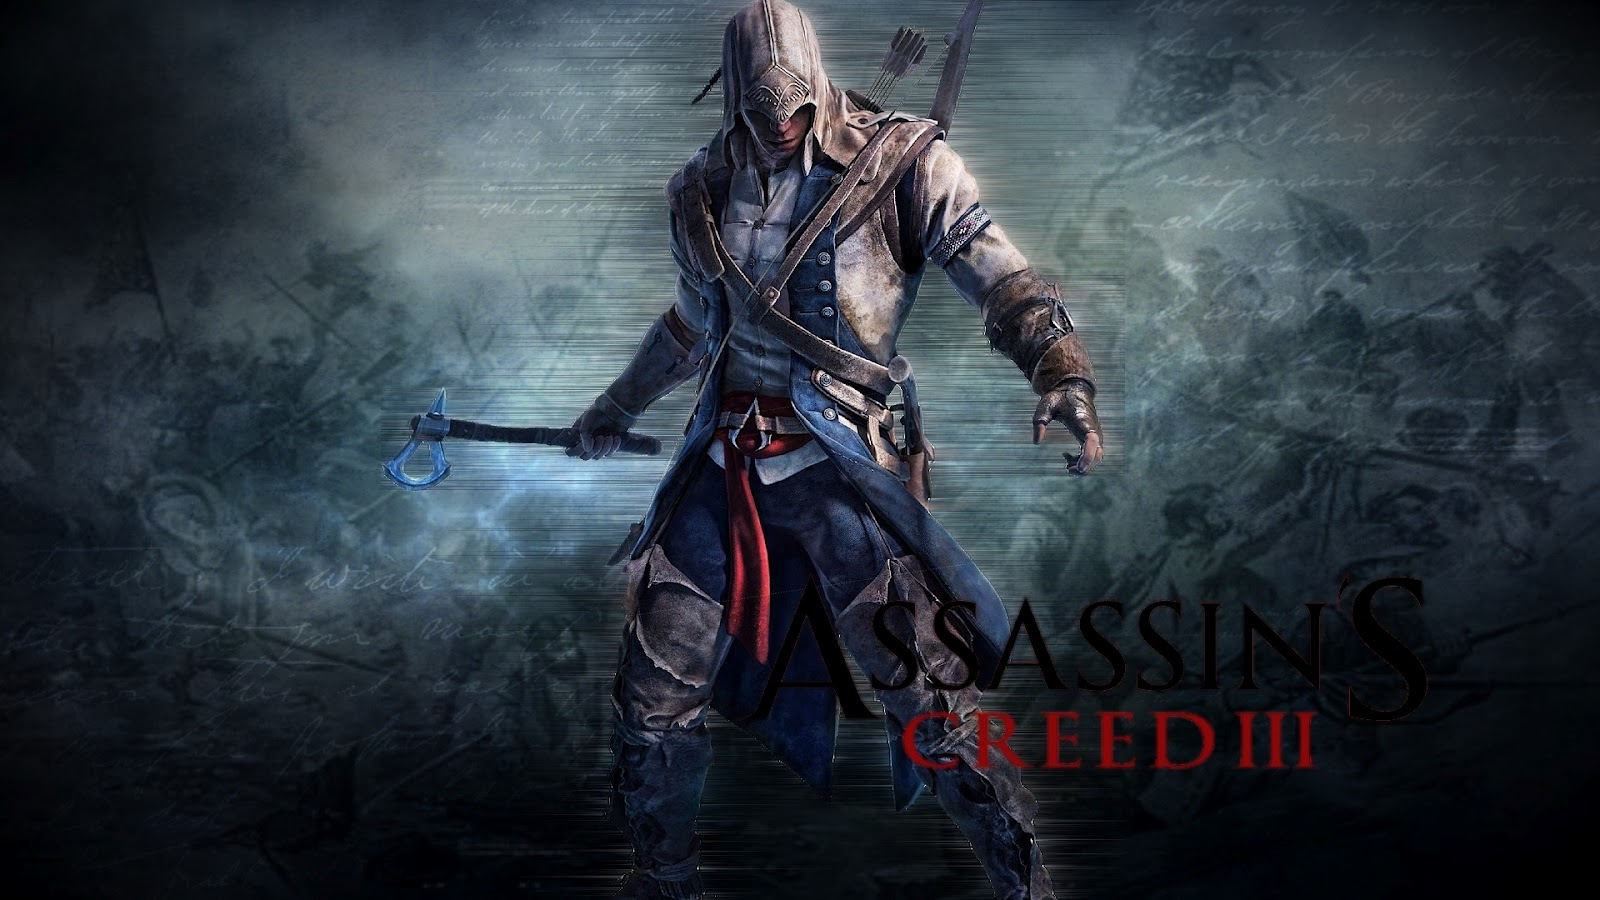 creed iii wallpaper - photo #2